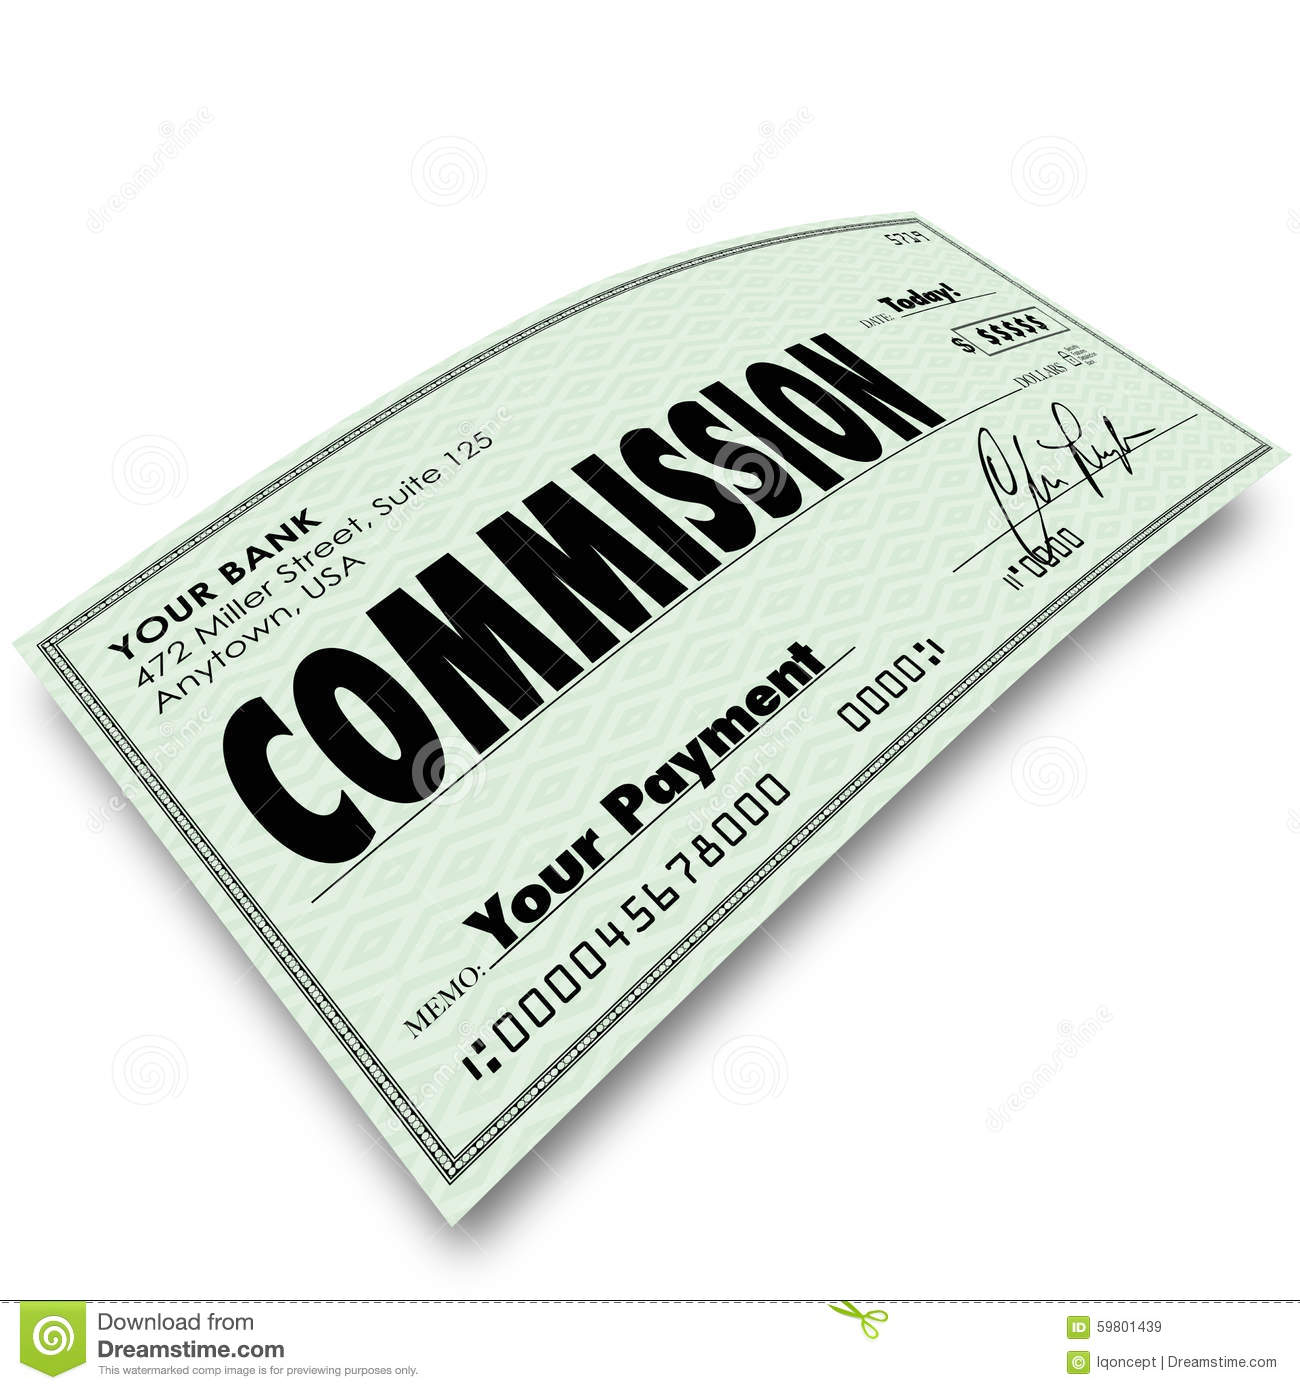 No Credit Check Credit Cards >> Commission Check Sale Compensation Pay Income Money Stock Illustration - Image: 59801439